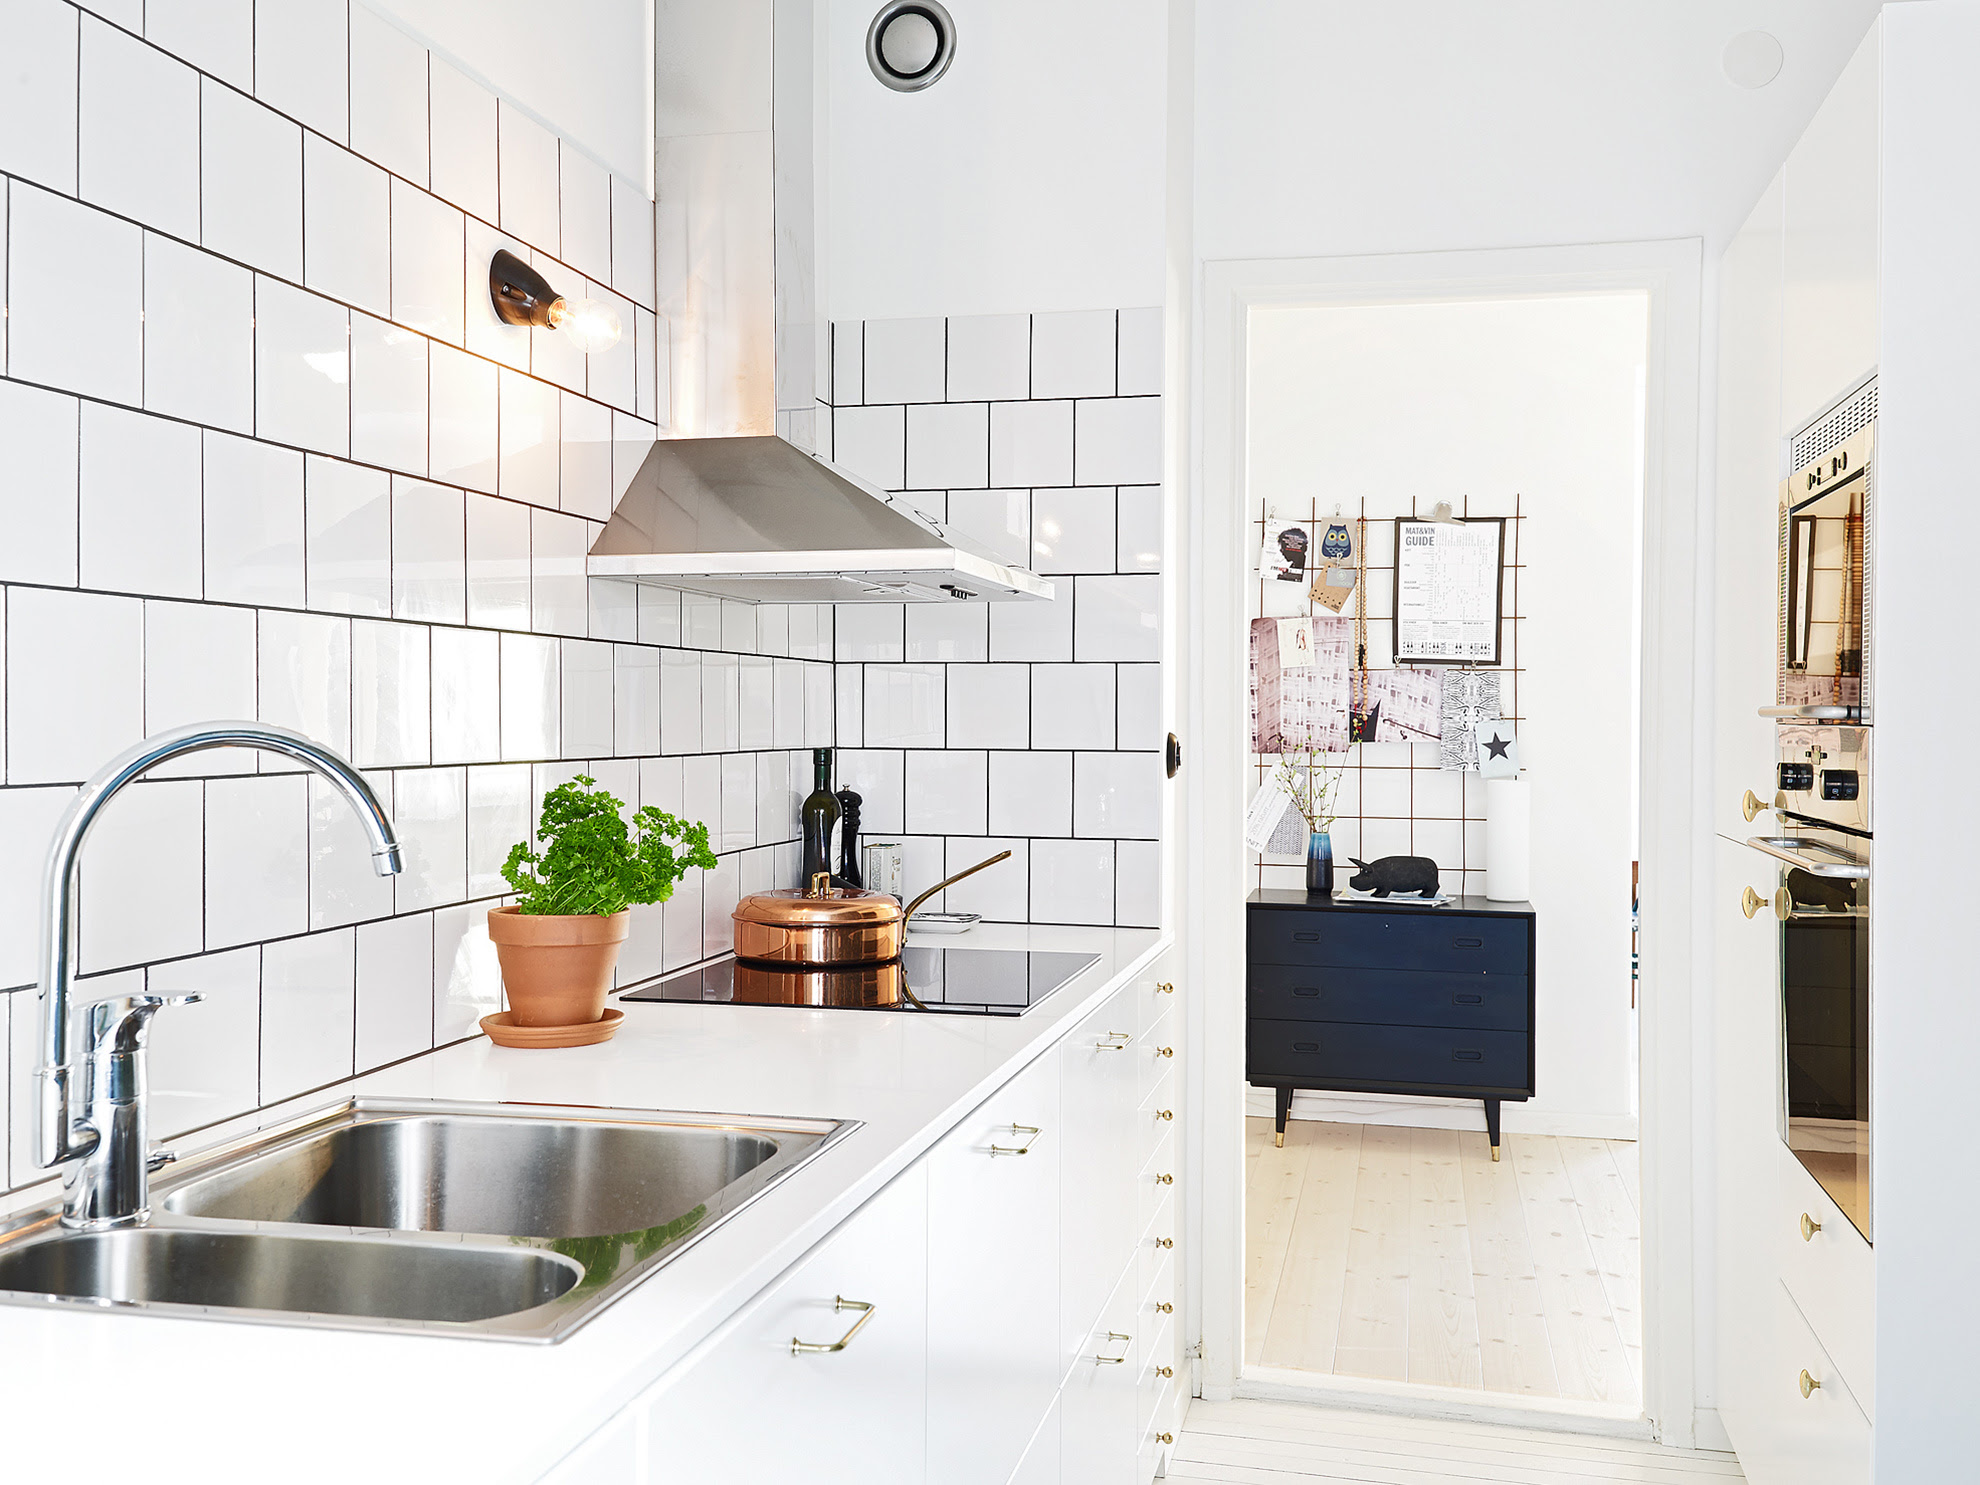 Kitchen Subway Tiles Are Back In Style - 50 Inspiring Designs